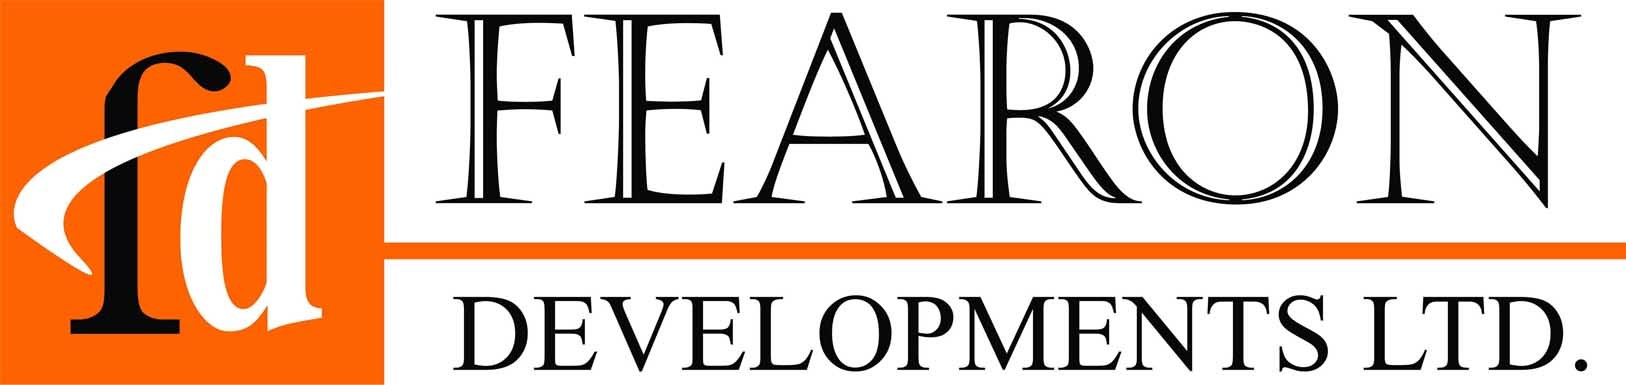 Fearon Developments Logo